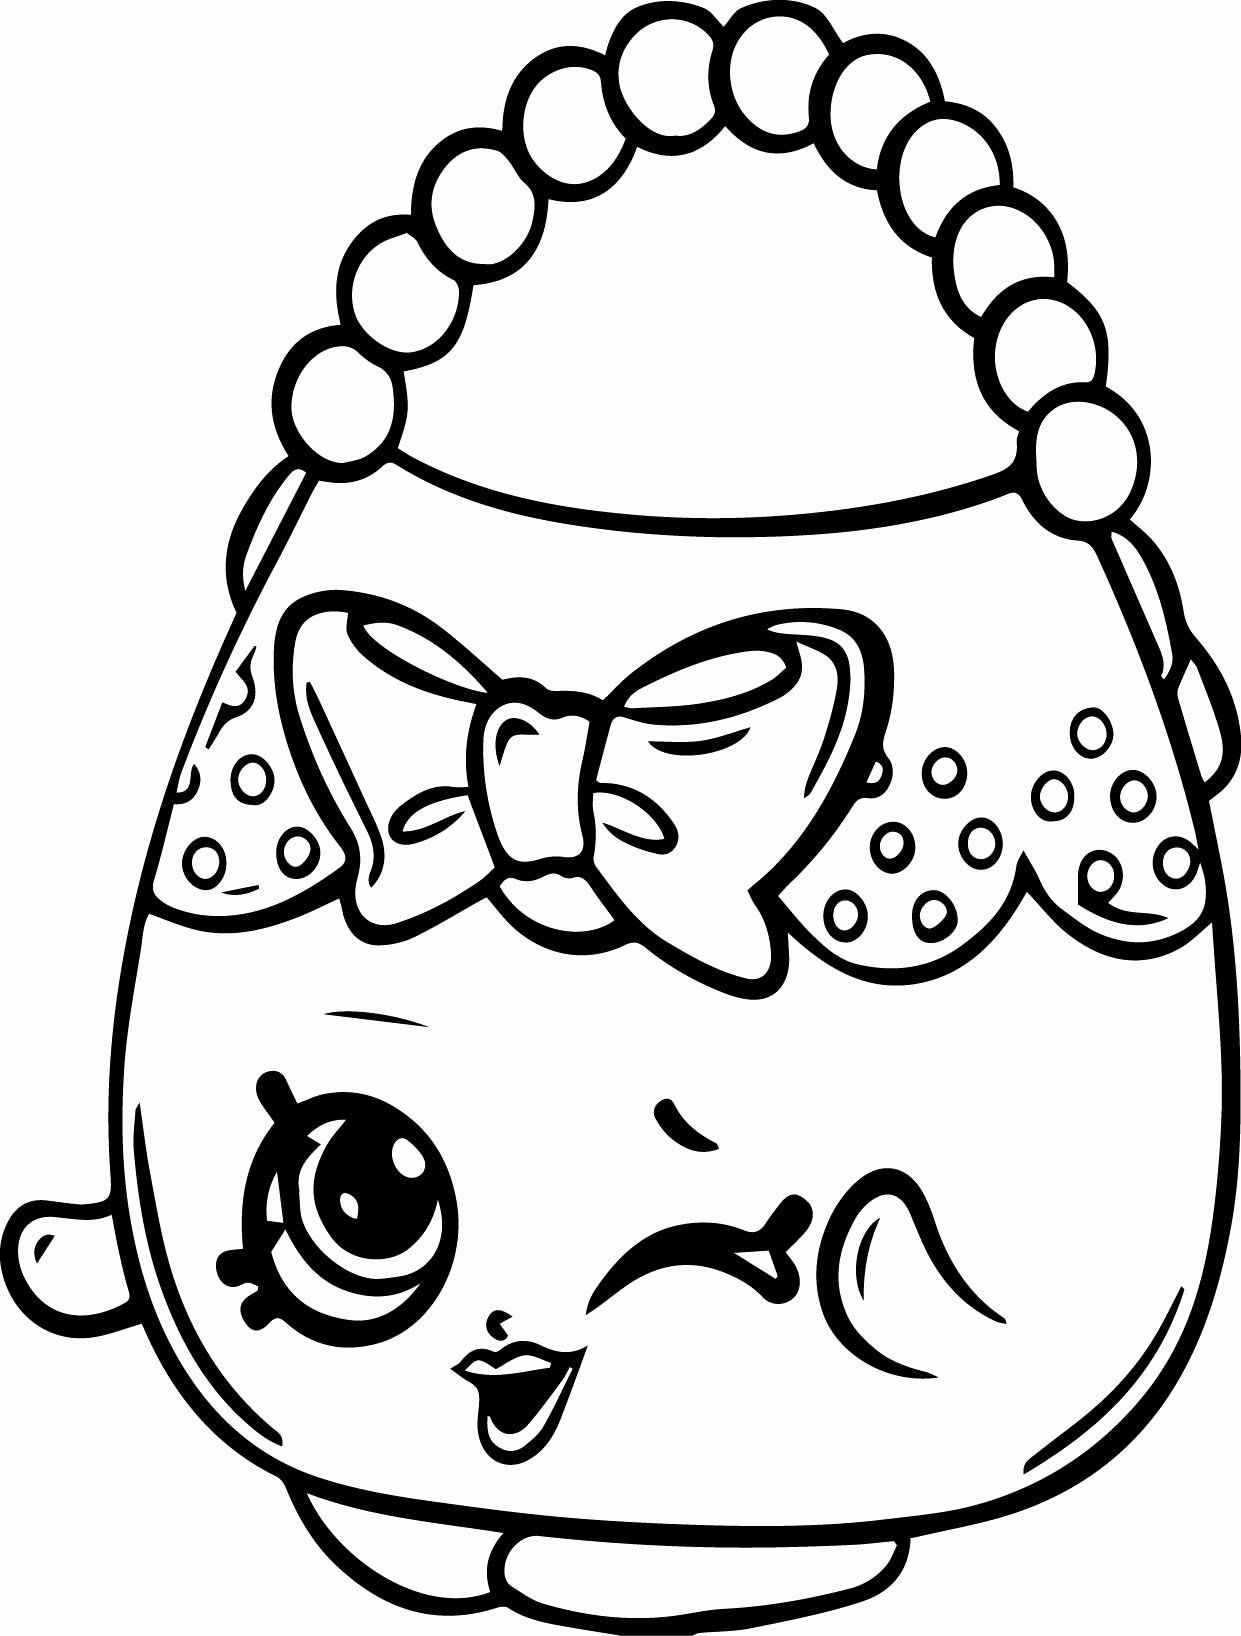 Shopkins Coloring Pages For Kids In 2020 Shopkin Coloring Pages Shopkins Colouring Pages Shopkins Coloring Pages Free Printable